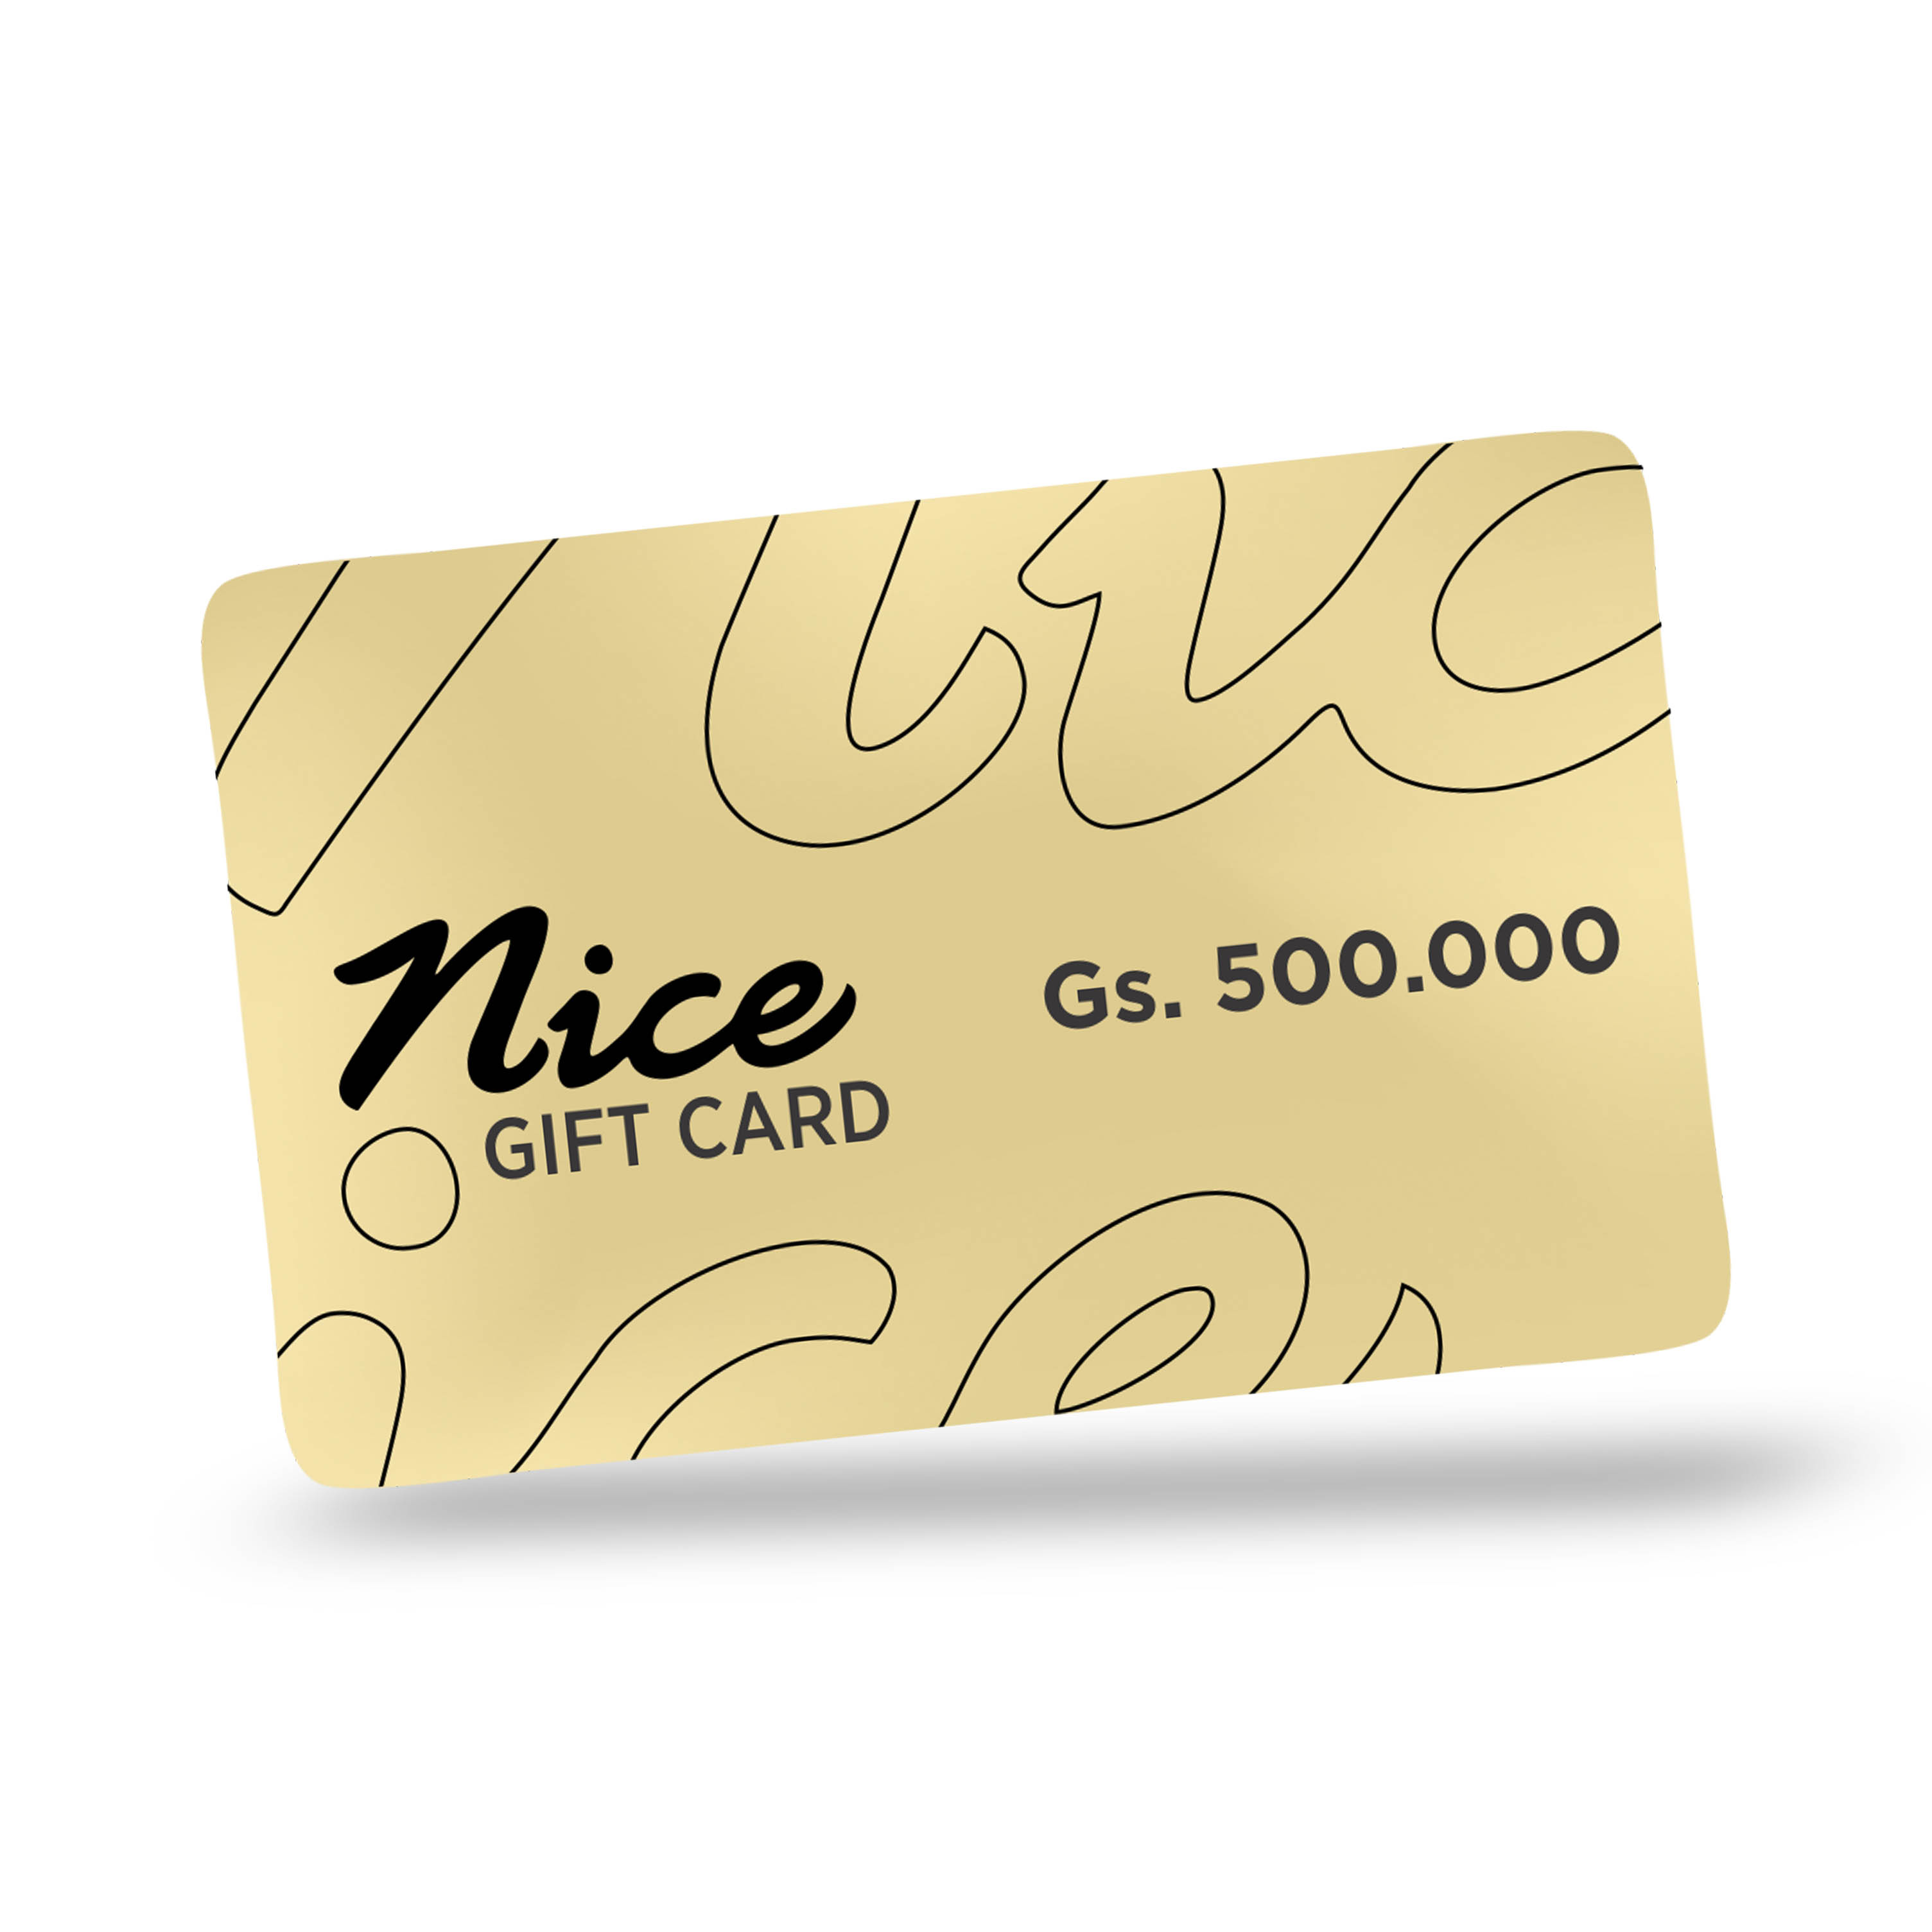 Gift Card Gs. 500.000